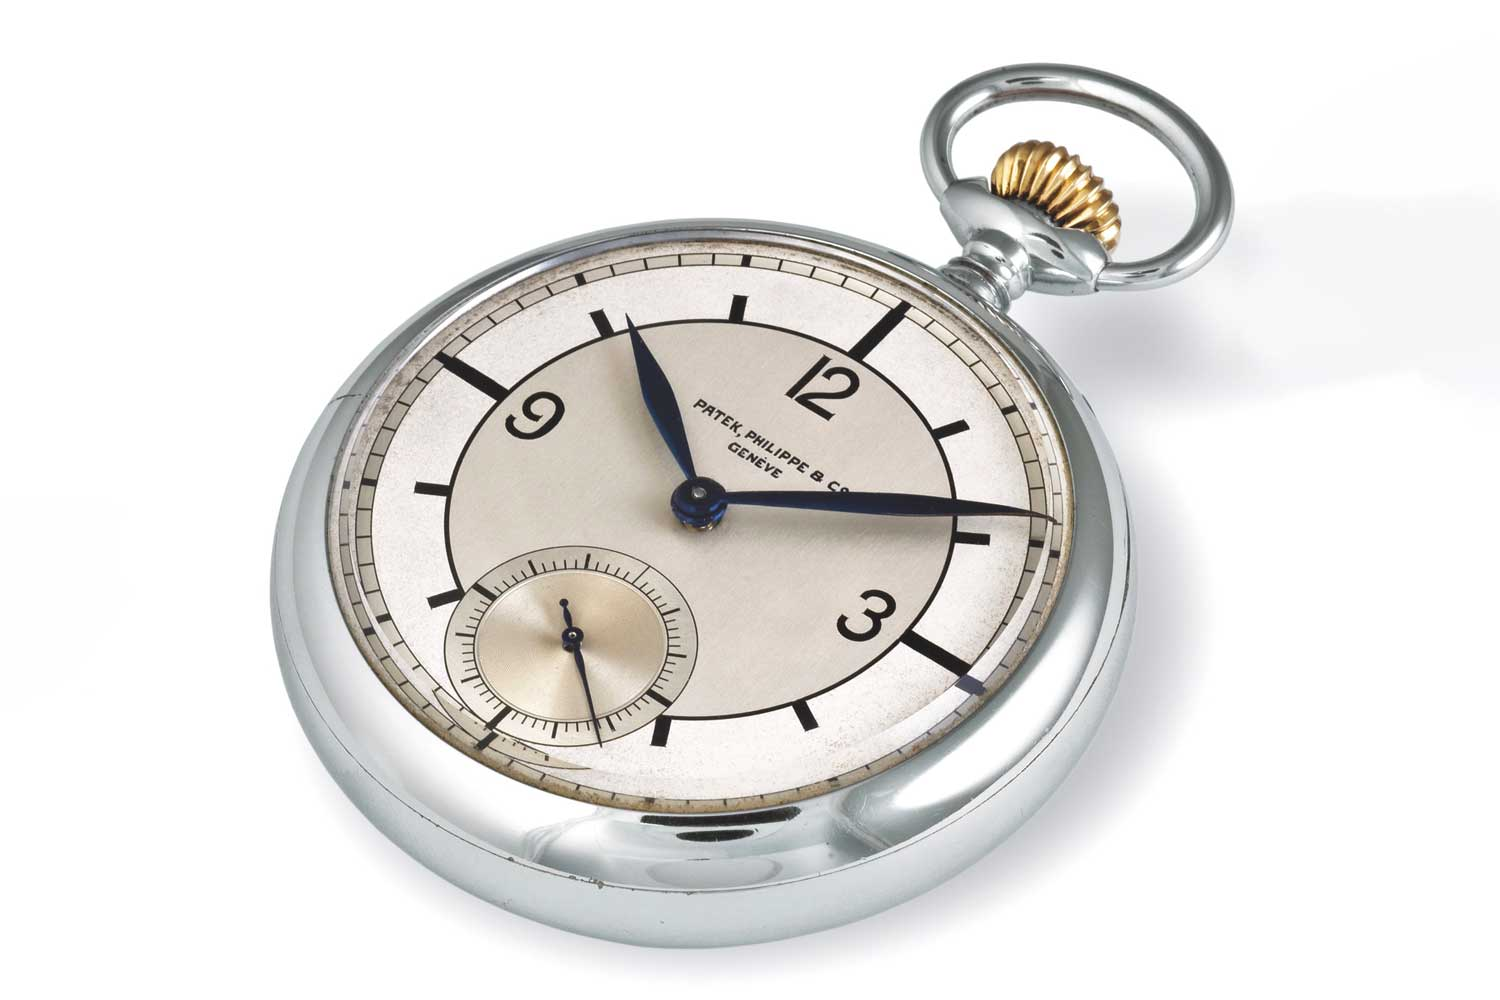 Patek Philippe pocket watch with scientific dial dating from 1923